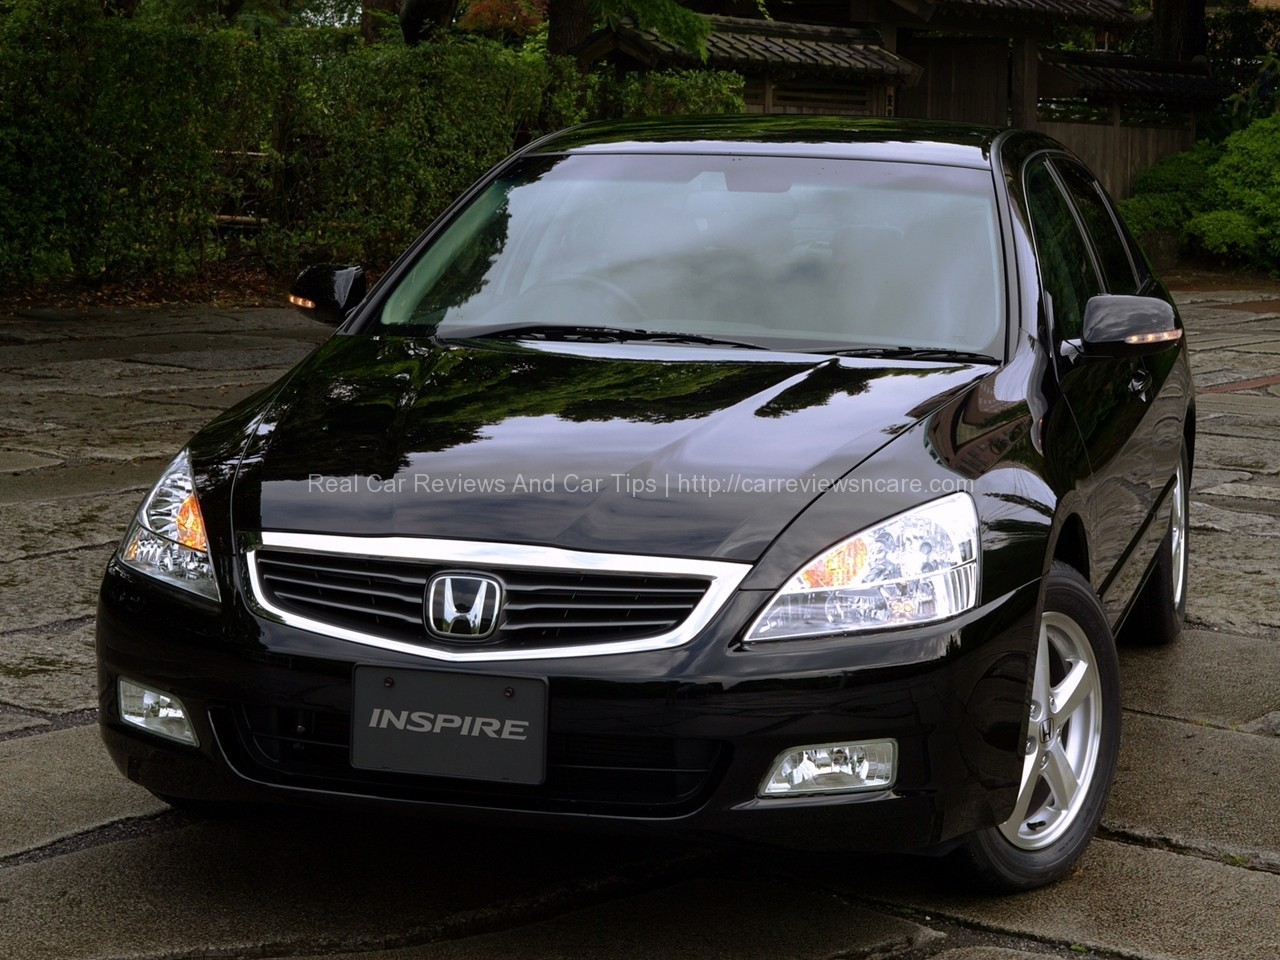 honda inspire wallpaper #7